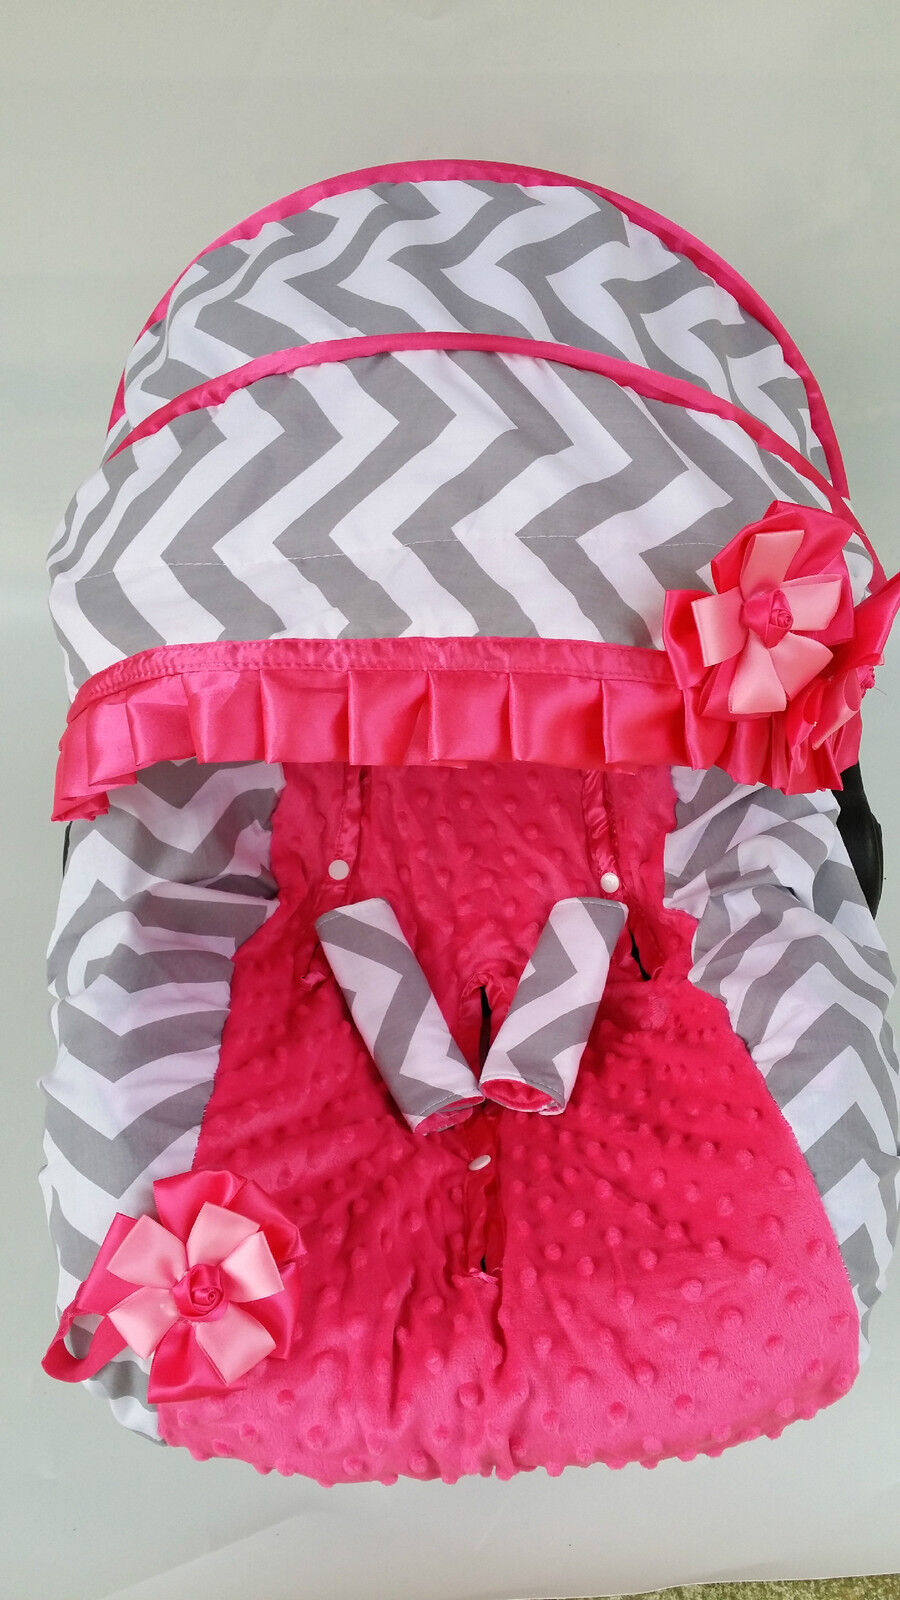 Infant Baby Trend Car Seat Baby Girl Gray Pink Infant Car Seat Cover Canopy Cover Fit